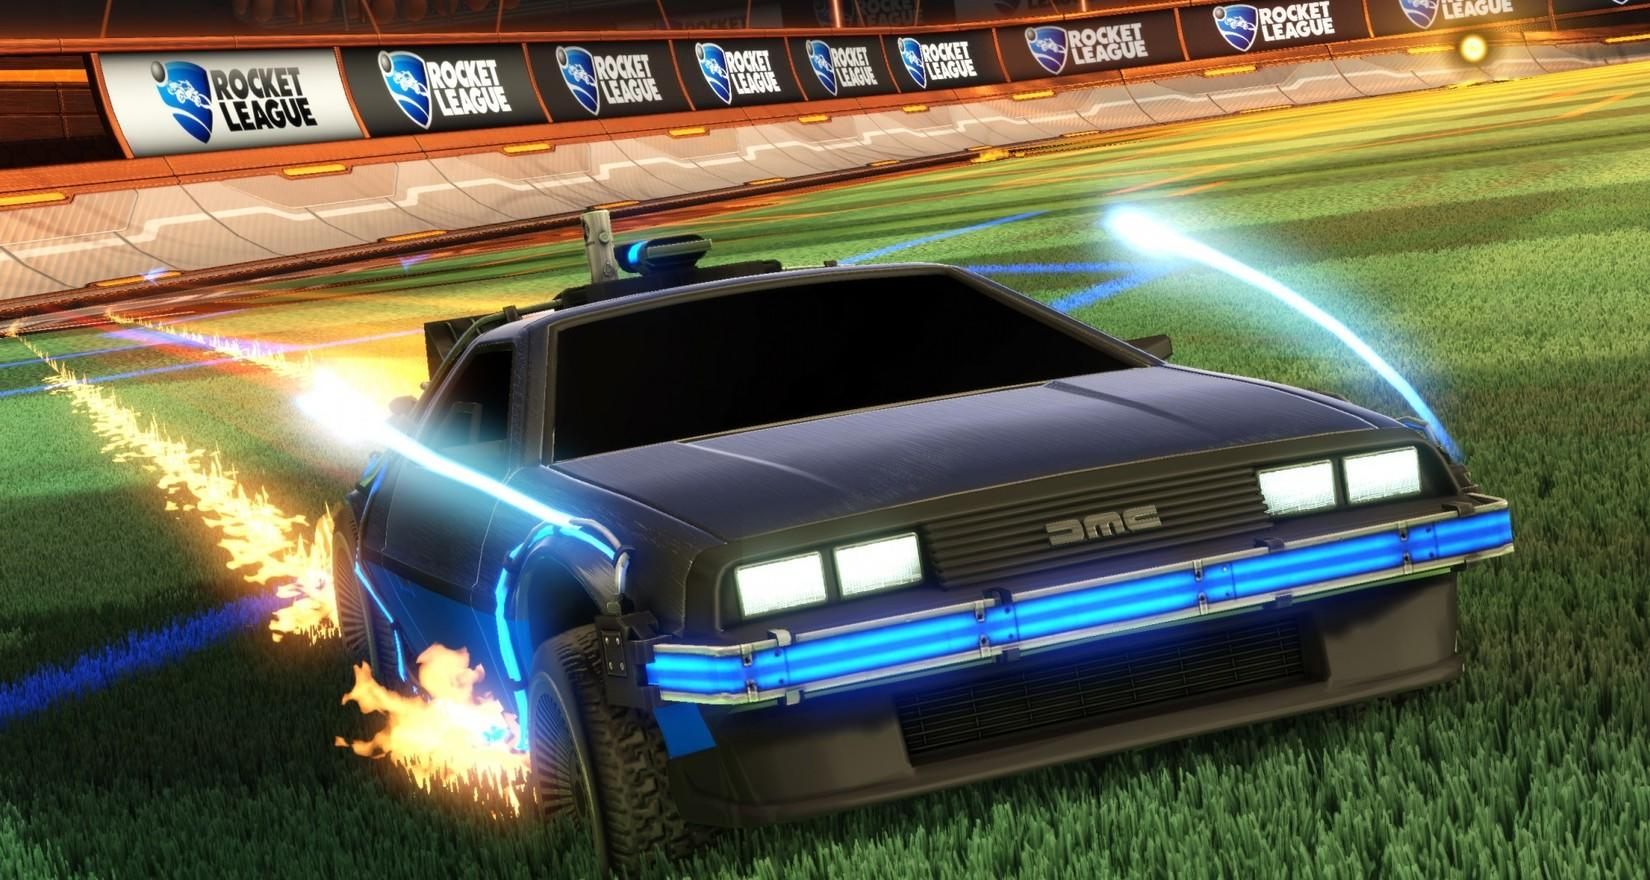 Rocket League Goes Back to the Future! Image